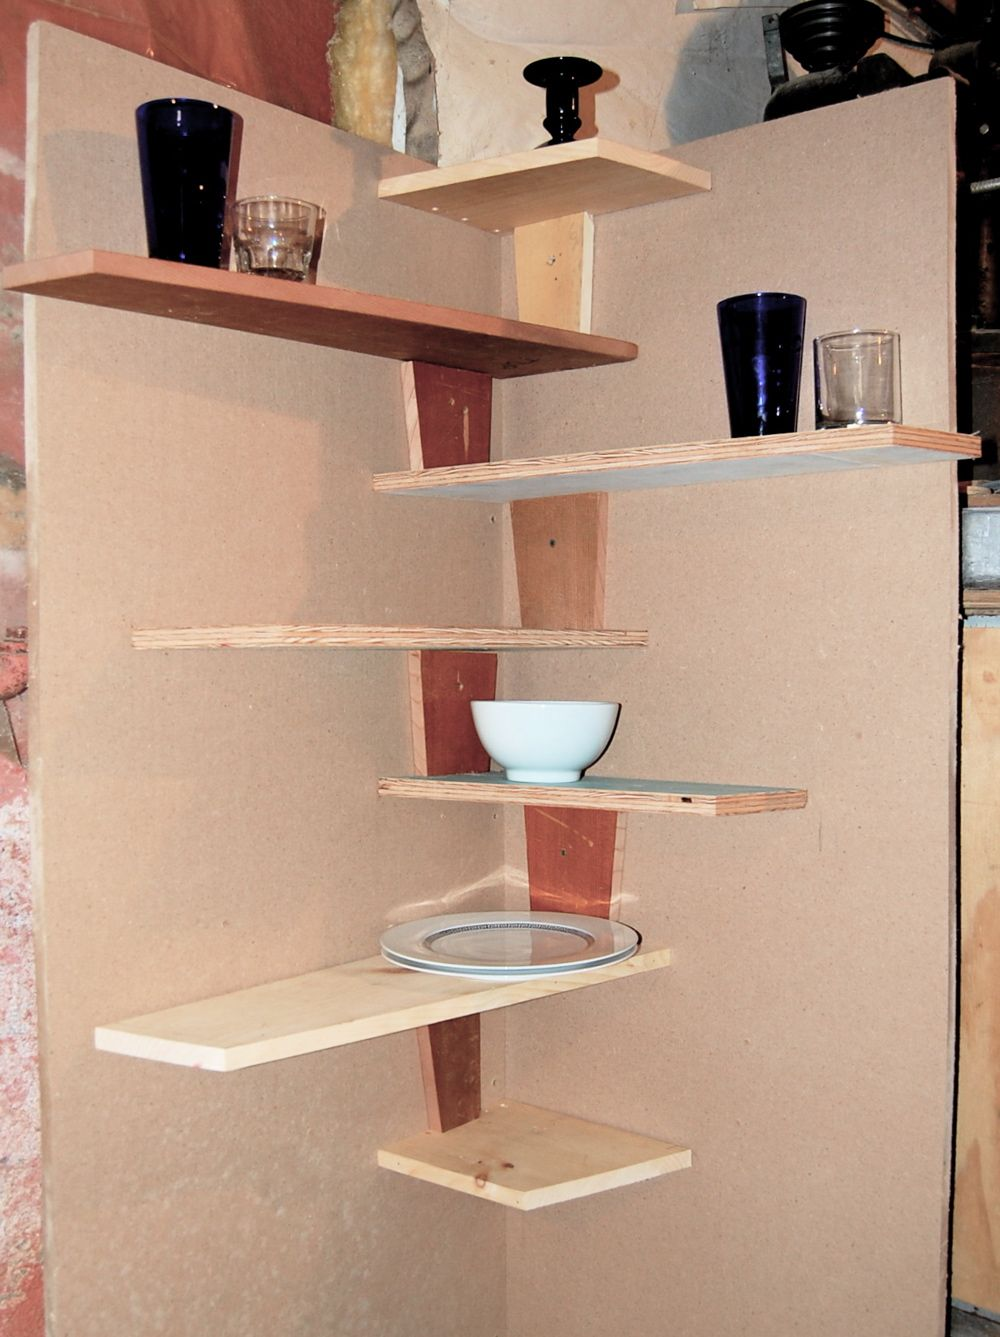 Corner Shelf Protoprototype Wall Mounted Corner Shelves Corner Wall Shelves Diy Corner Shelf